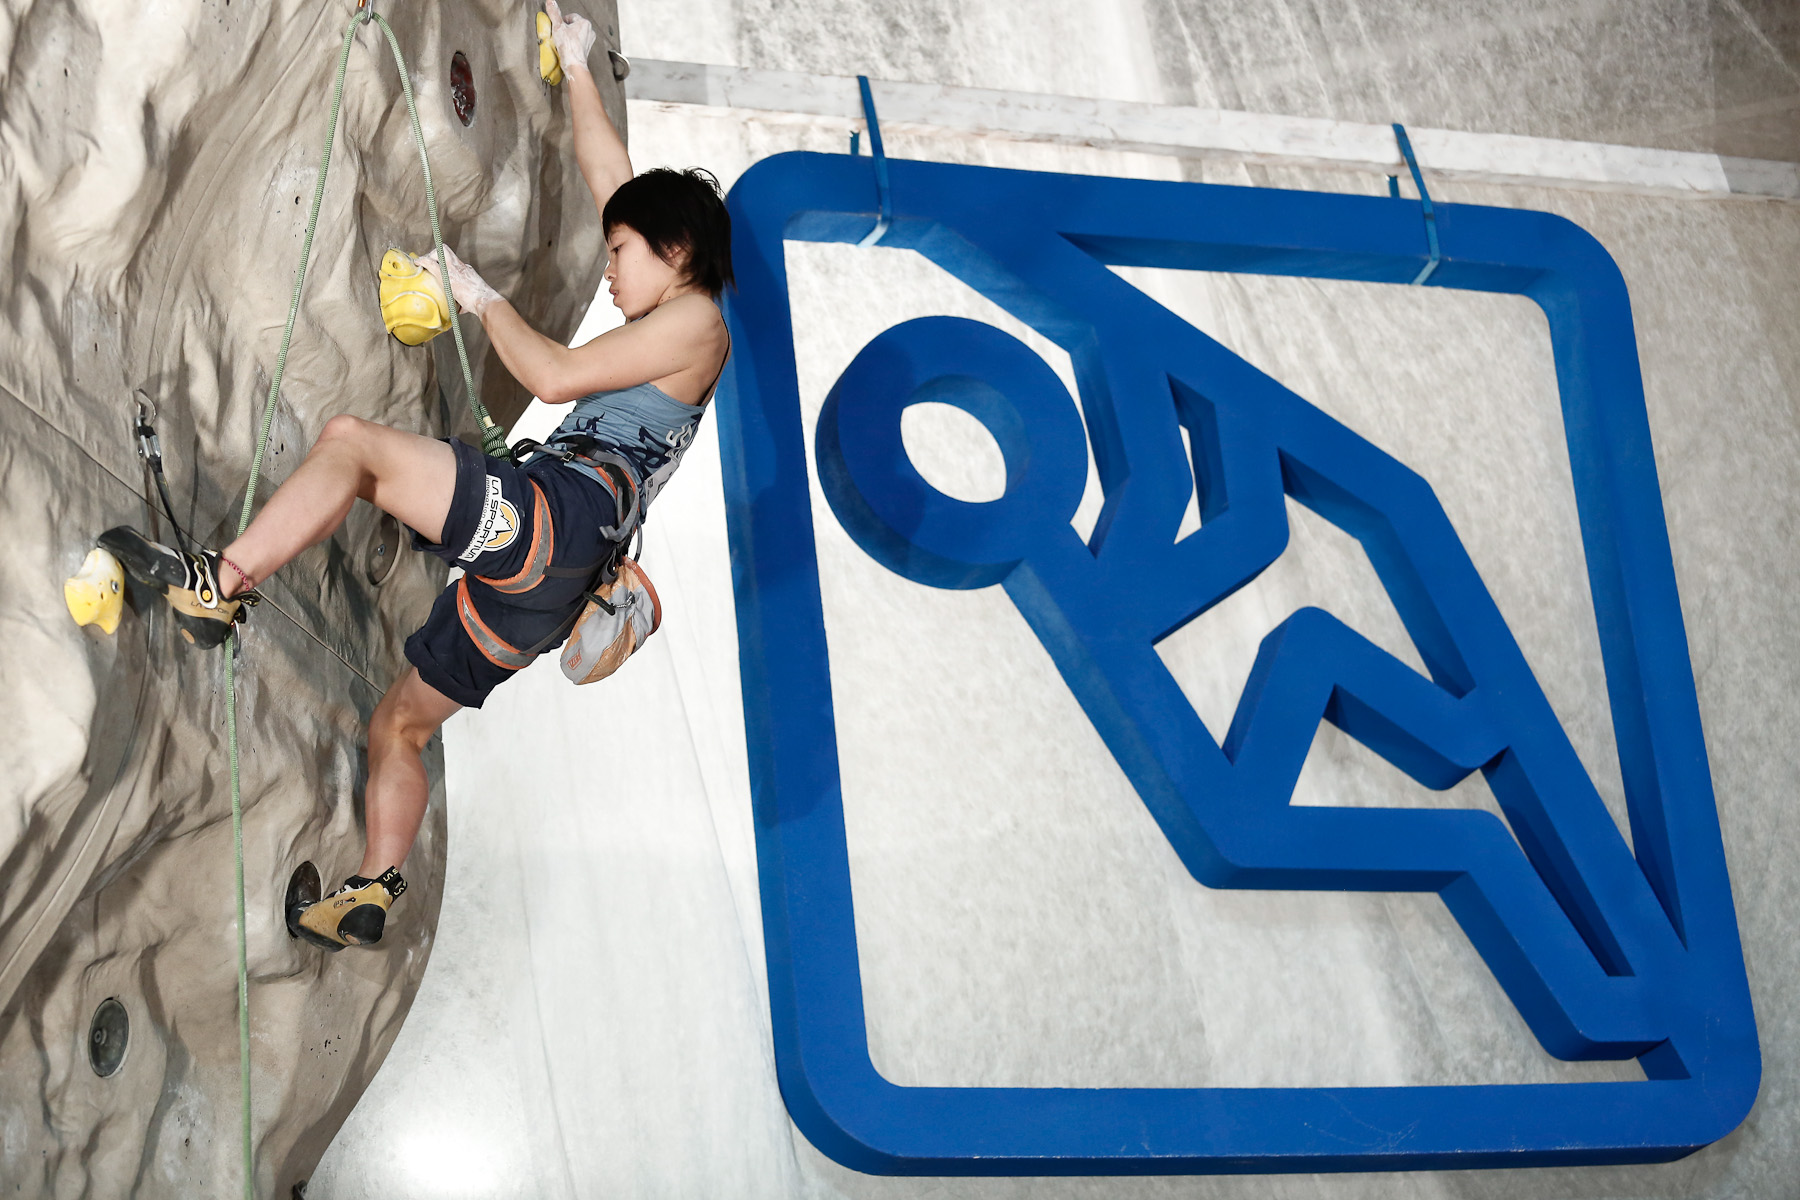 Momoka Oda of Japan competes during the IFSC climbing world cup finals in Kranj, Slovenia, on Nov 18, 2012.